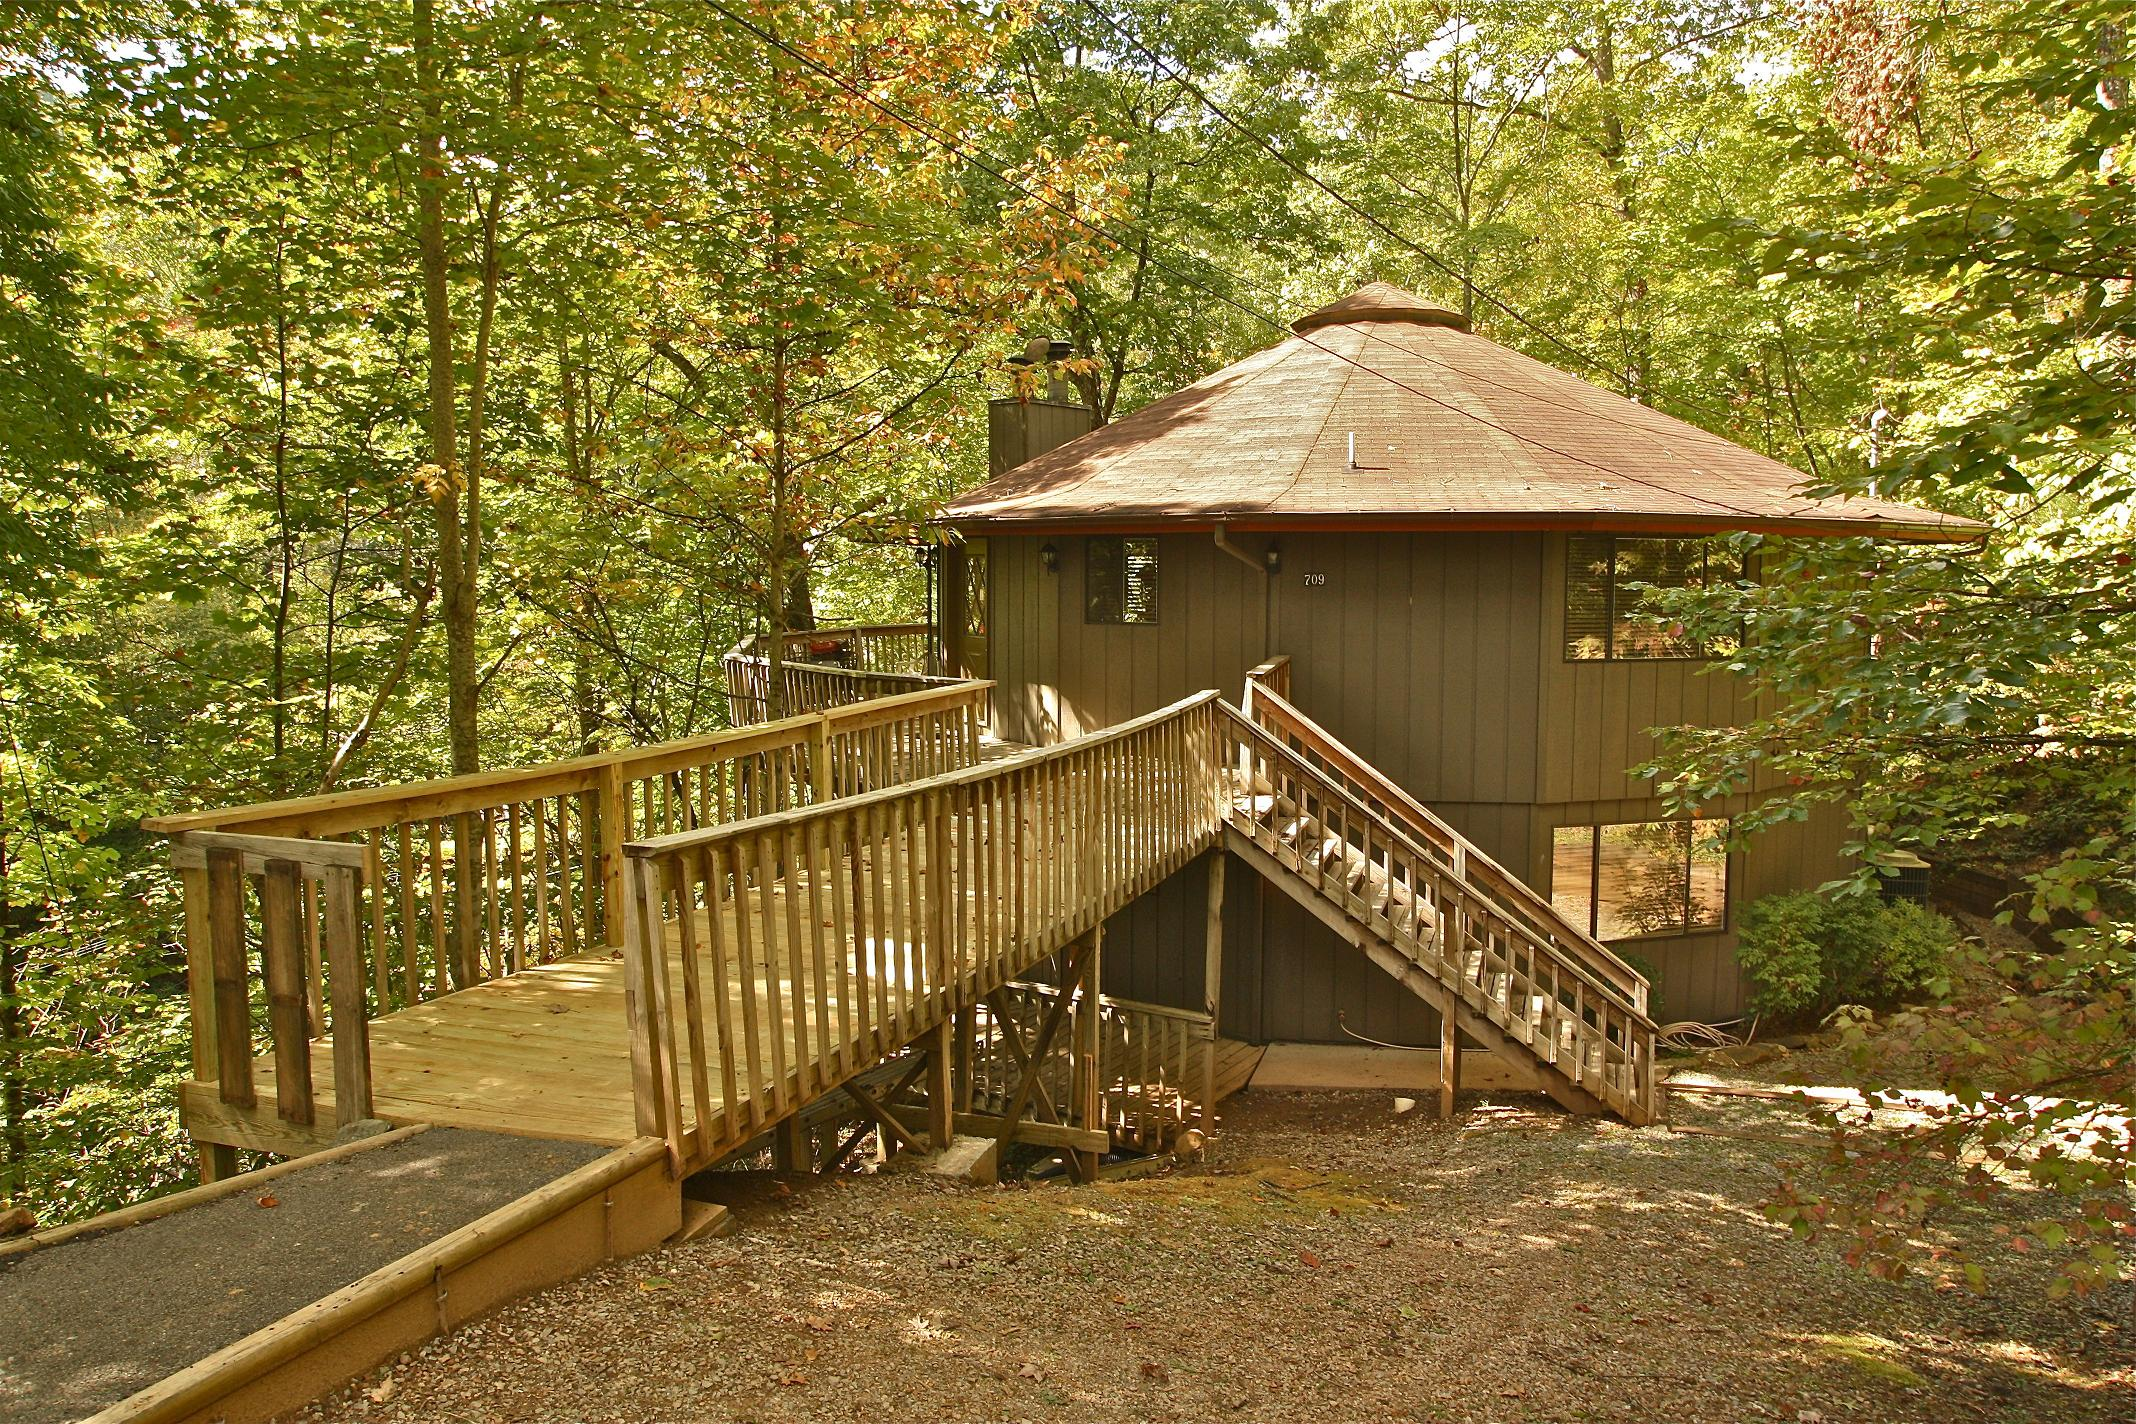 4 bedroom cabin rentals in gatlinburg tn mtn laurel chalets - 4 bedroom cabins in gatlinburg tn ...